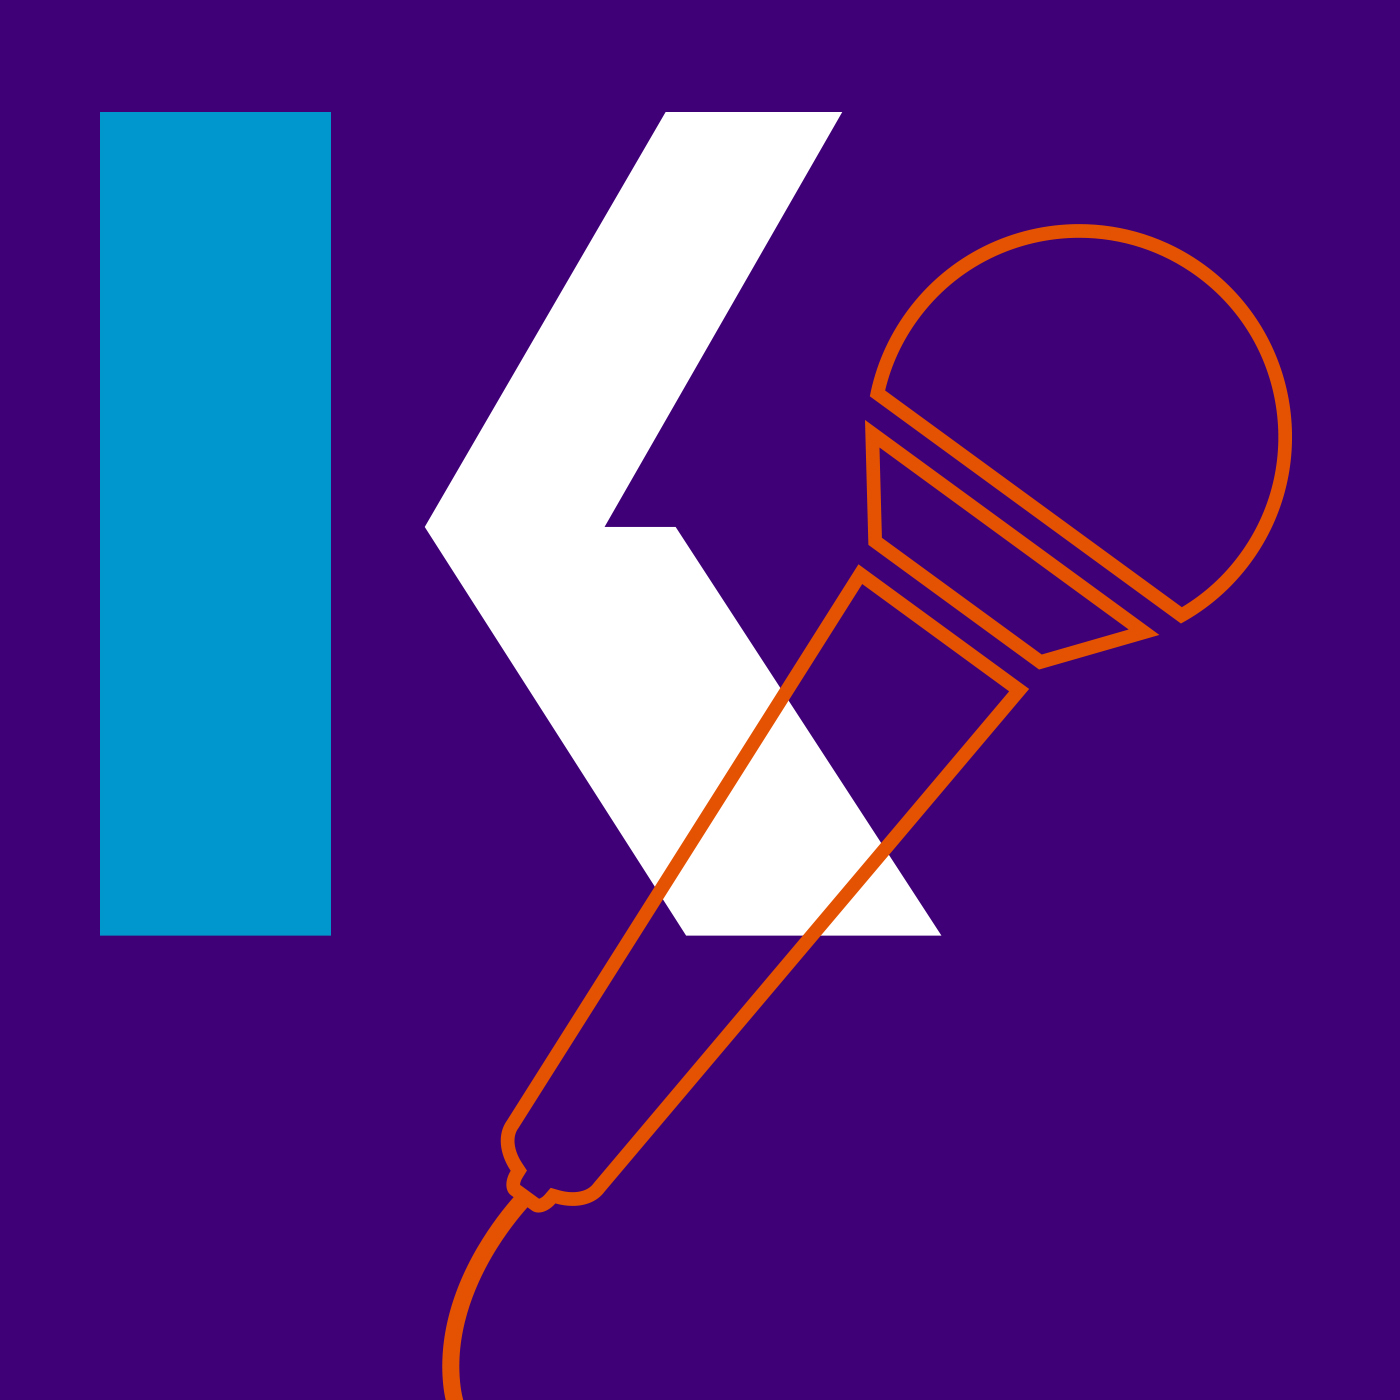 Kaplan's NCLEX Prepcast - Episode 32 - Managing ethical dilemmas in nursing